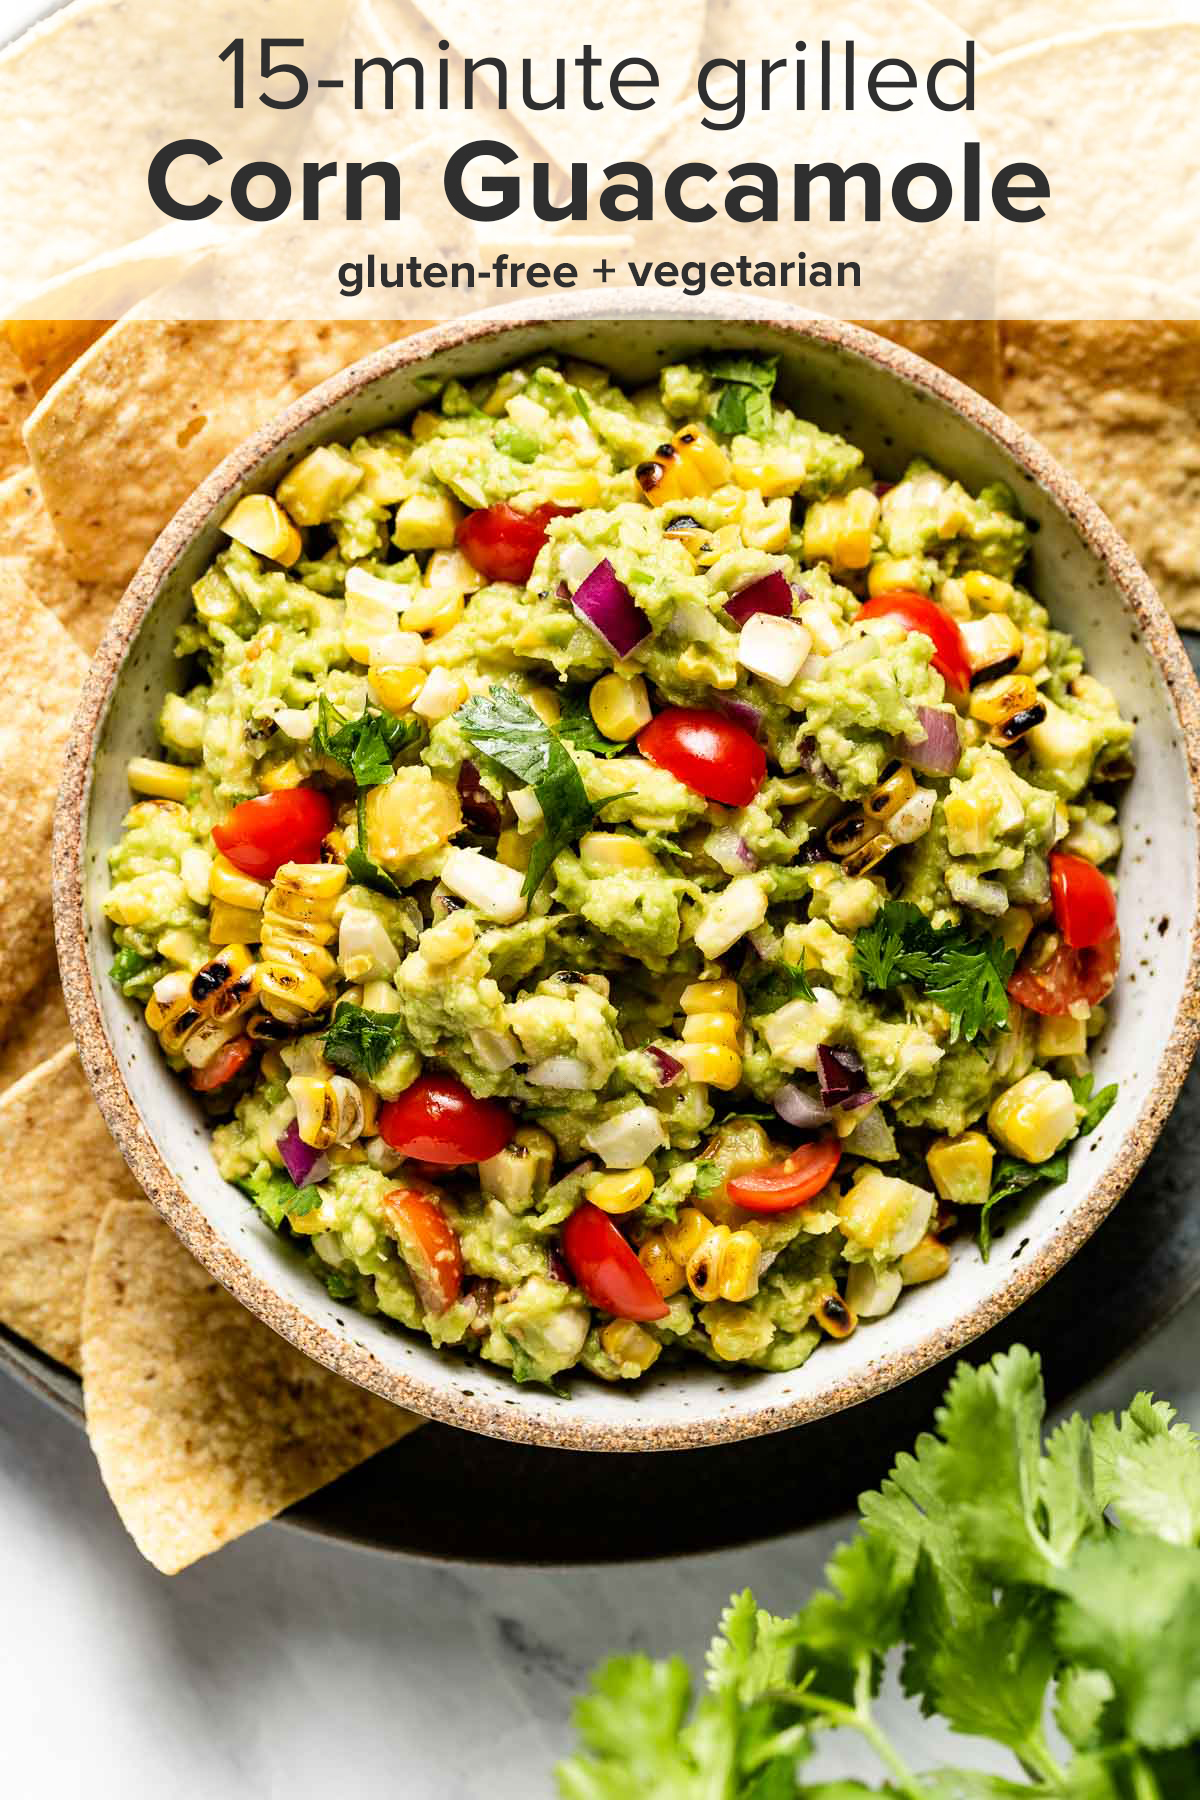 A bowl of corn guacamole from the top view with the recipe title on top of the picture.